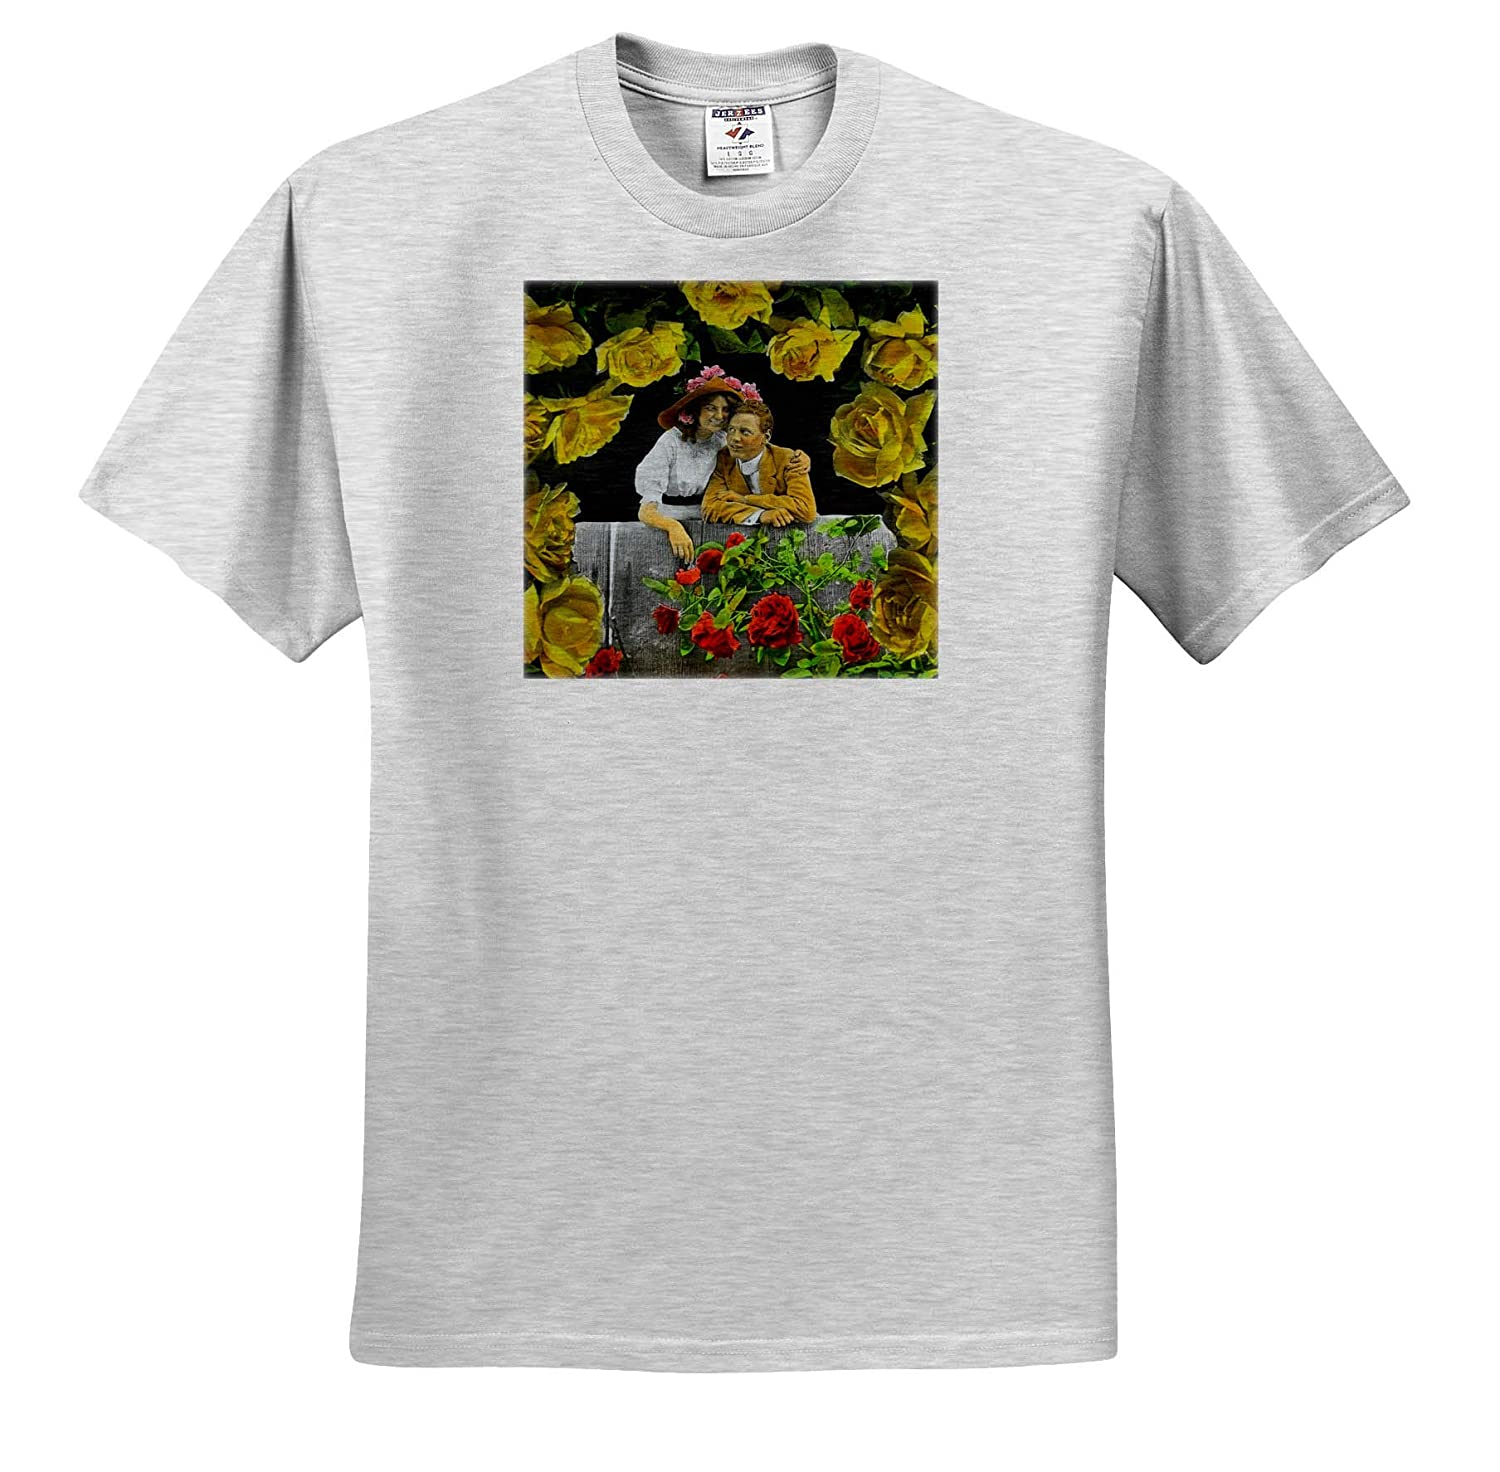 3dRose Scenes from The Past Magic Lantern Scott and Van Altena Sing Along Slide My Life is Like a Yellow Rose T-Shirts